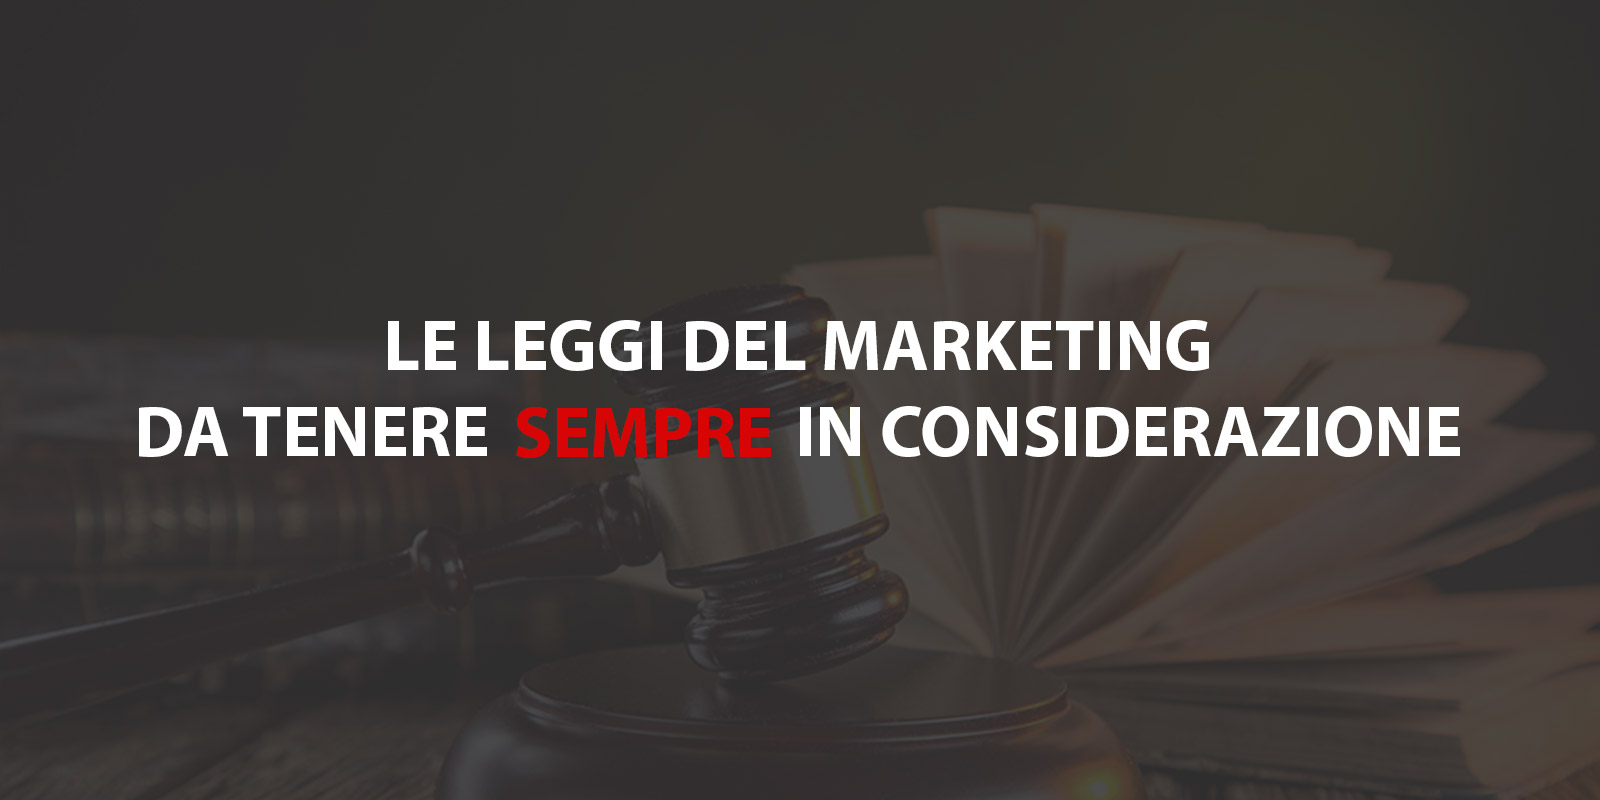 leggi fondamentali del marketing